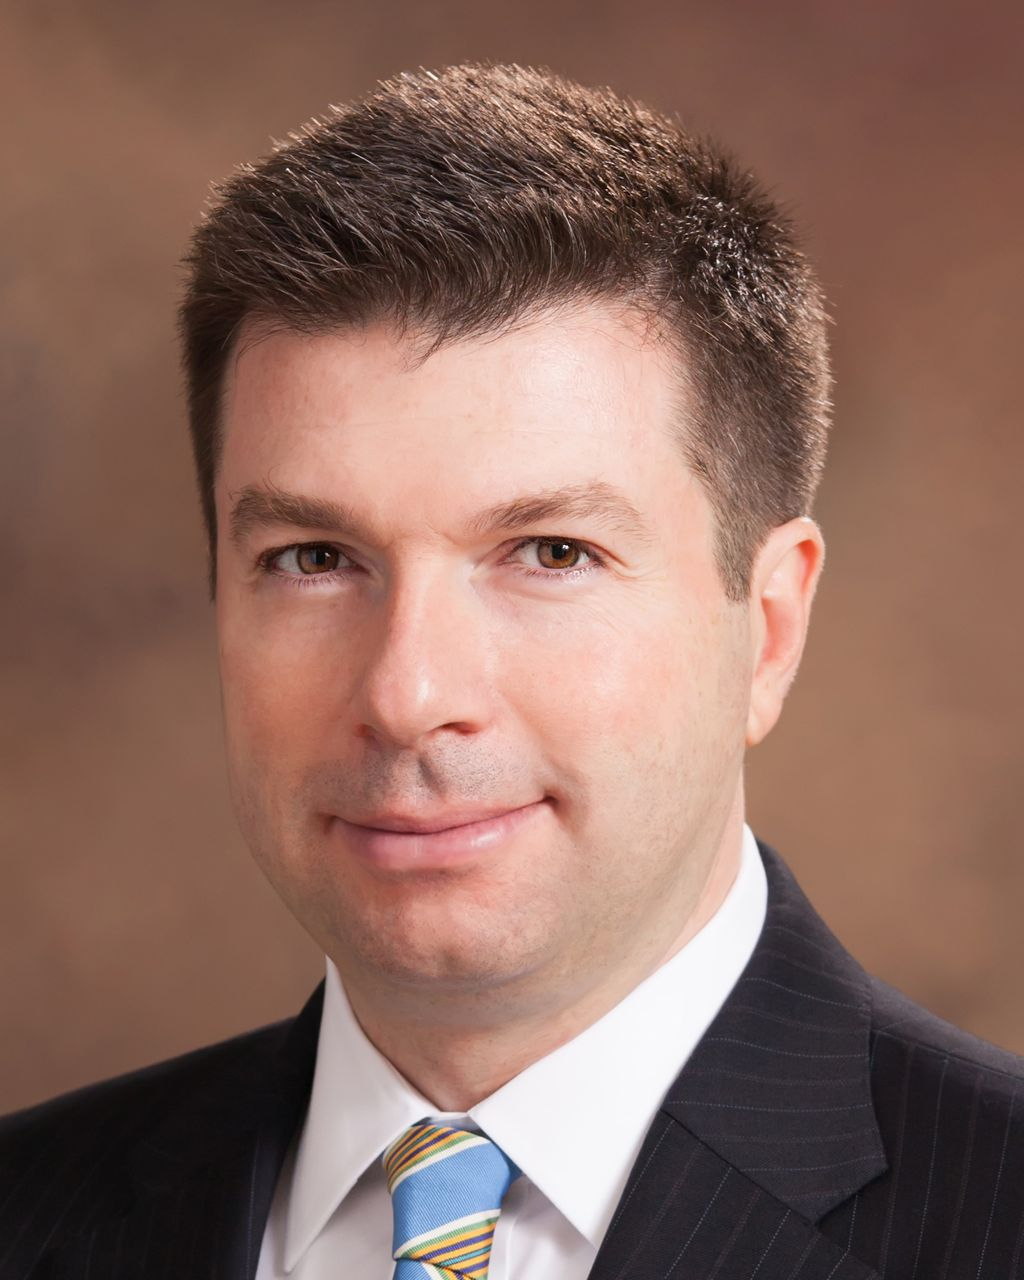 Patrick Cote, financial advisor Norwood MA